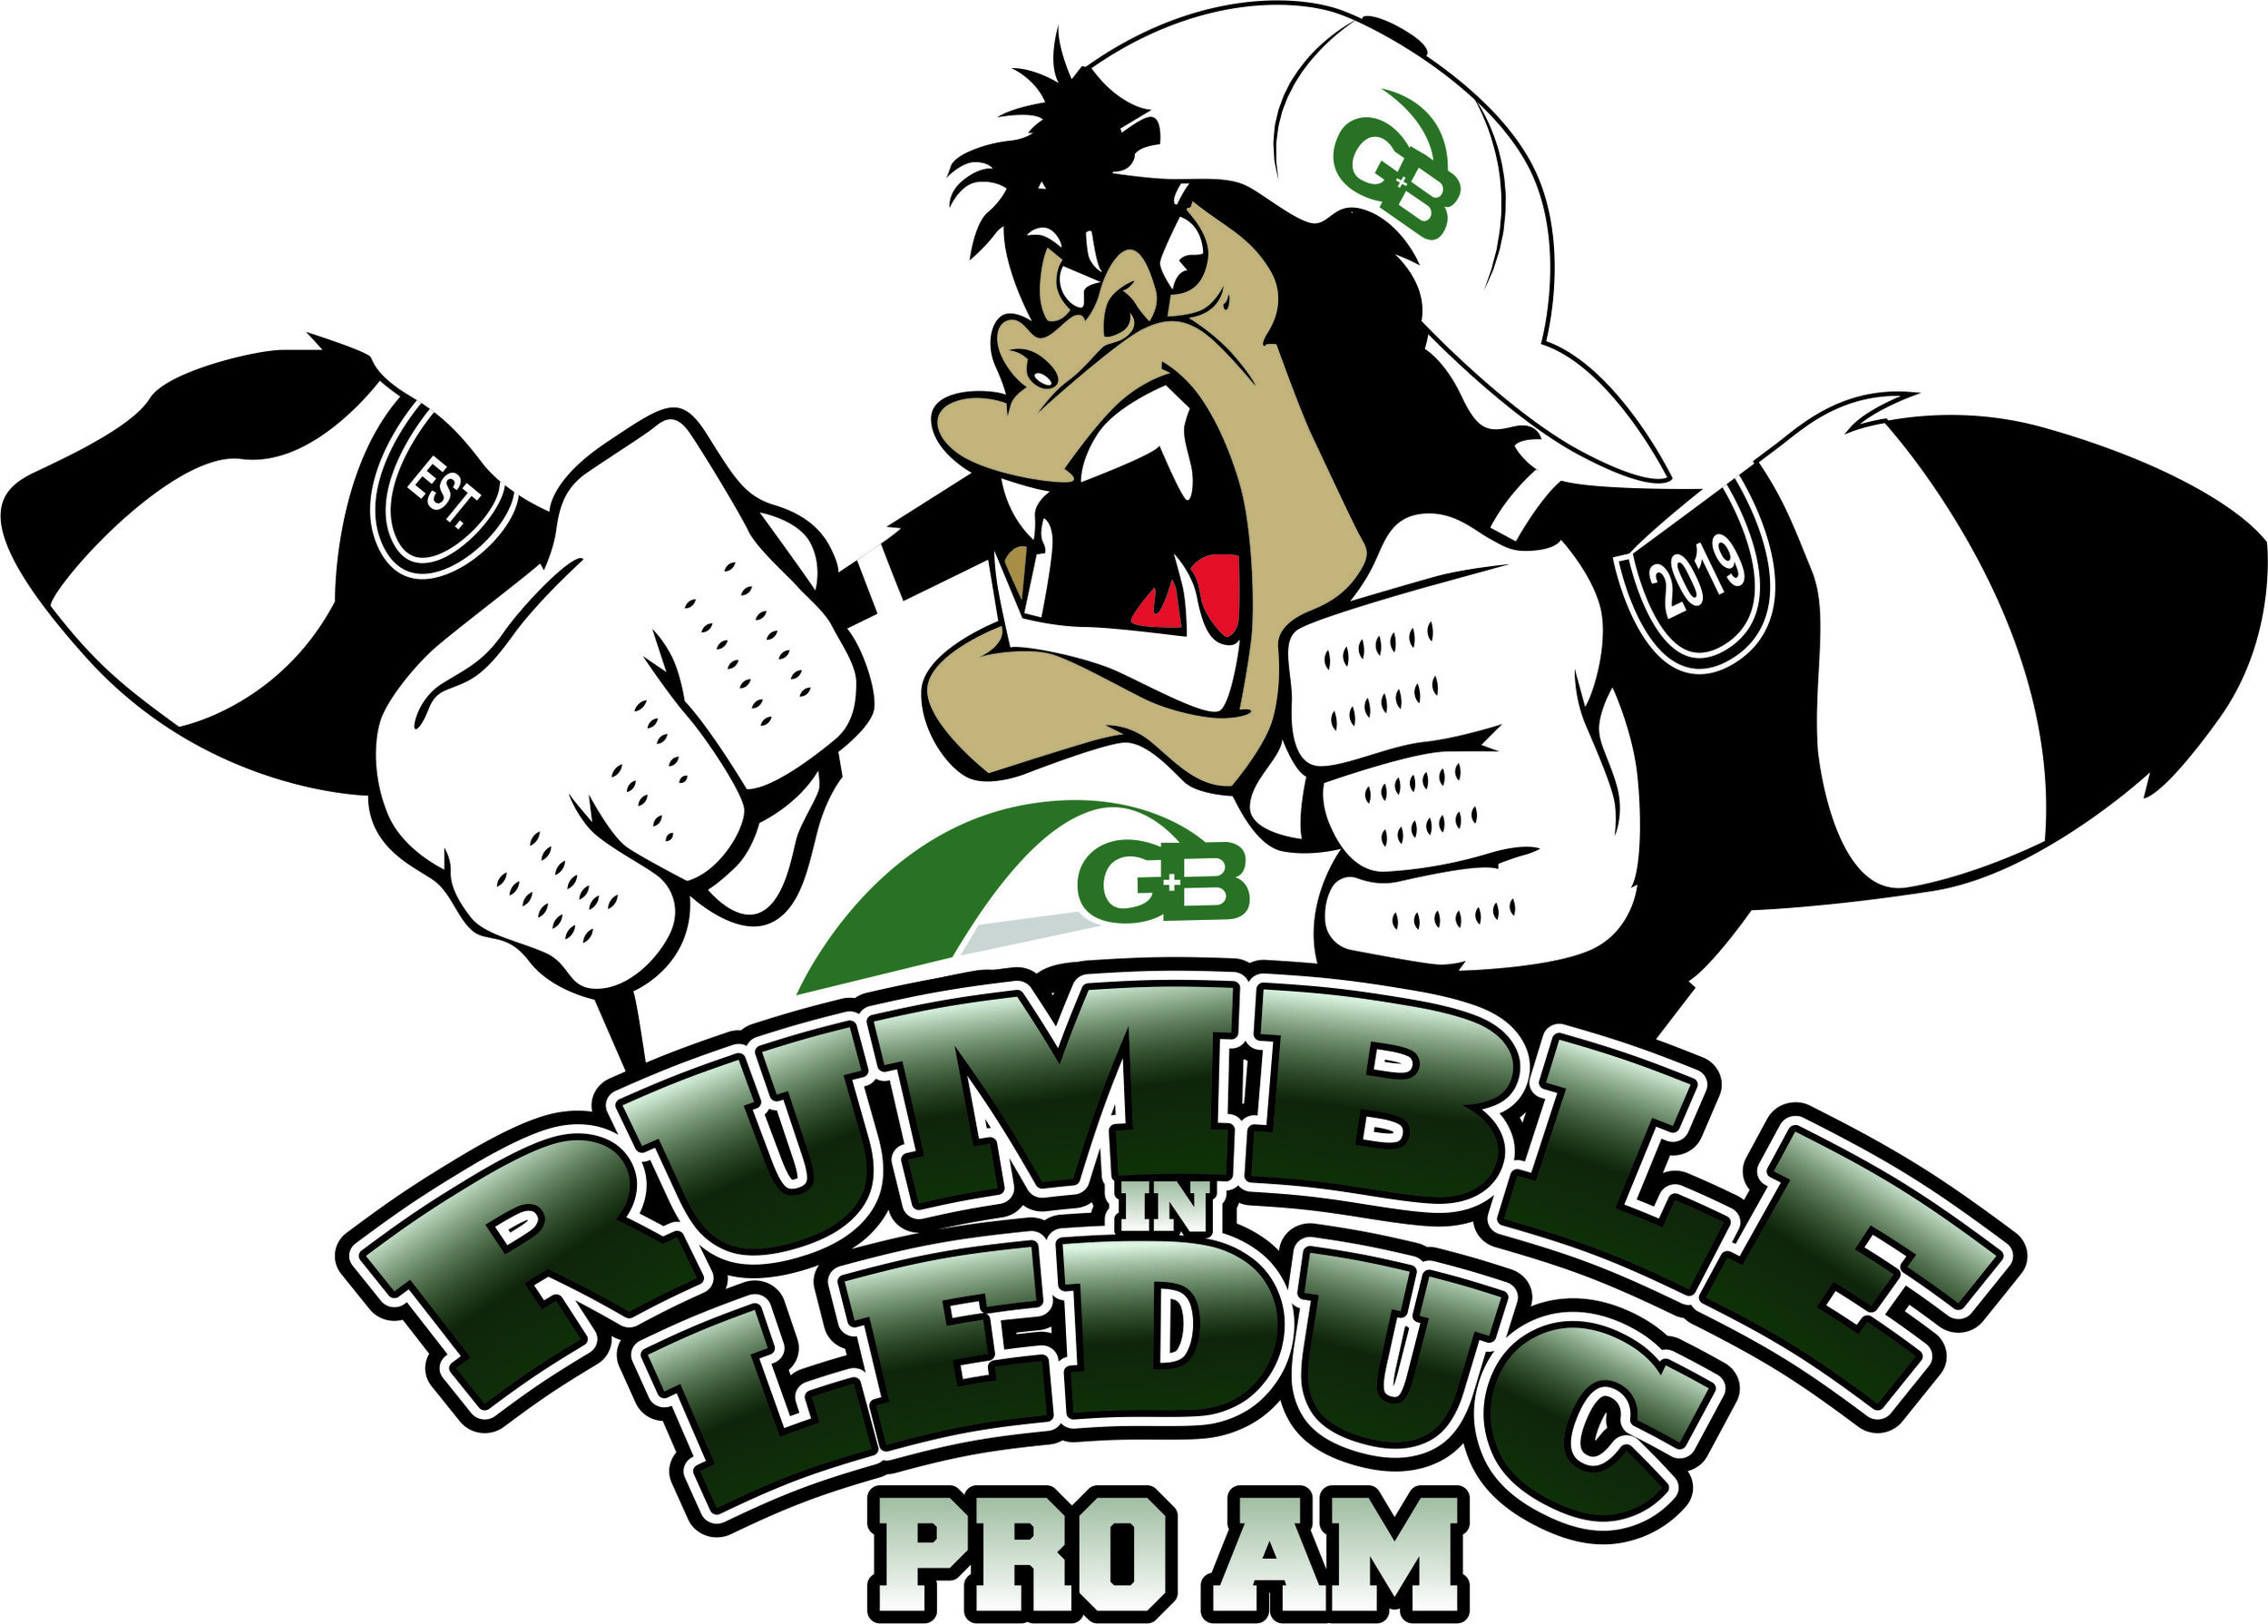 Leduc Golf Club Rumble in Leduc FINAL LOGO.jpg